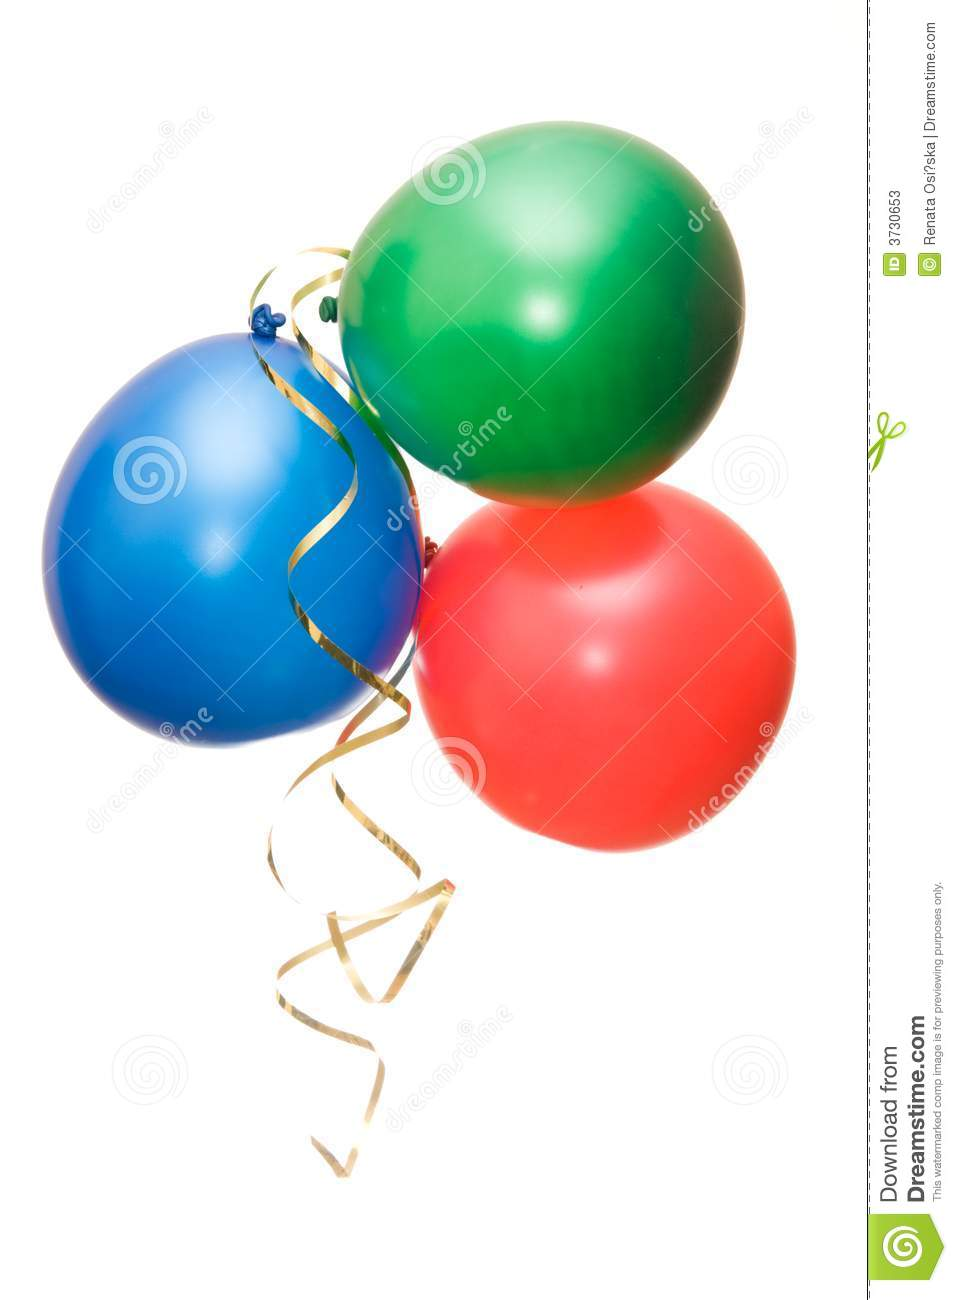 Party Baloons Stock Photos - Image: 3730653